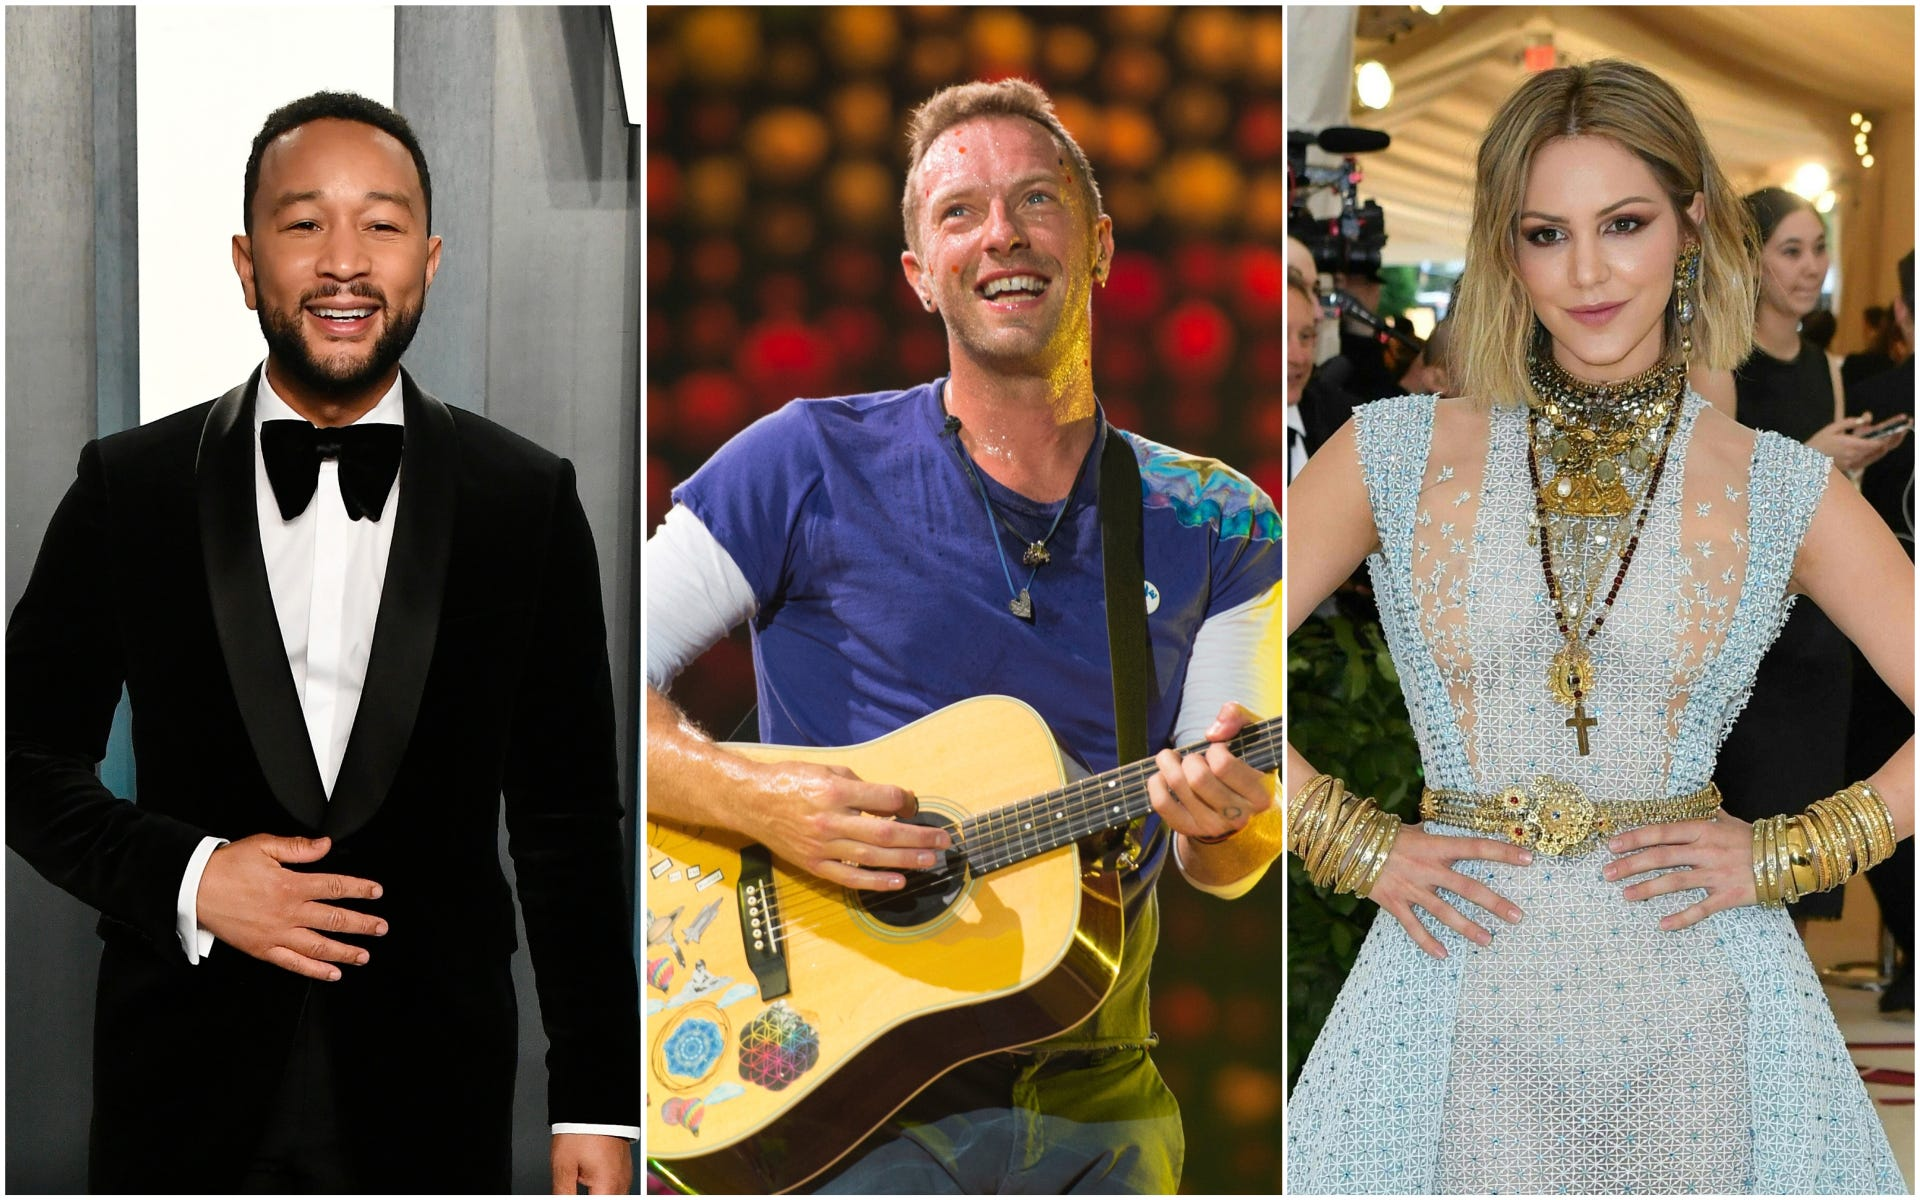 John Legend, Coldplay, Keith Urban and more musicians host virtual concerts amid coronavirus quarantines